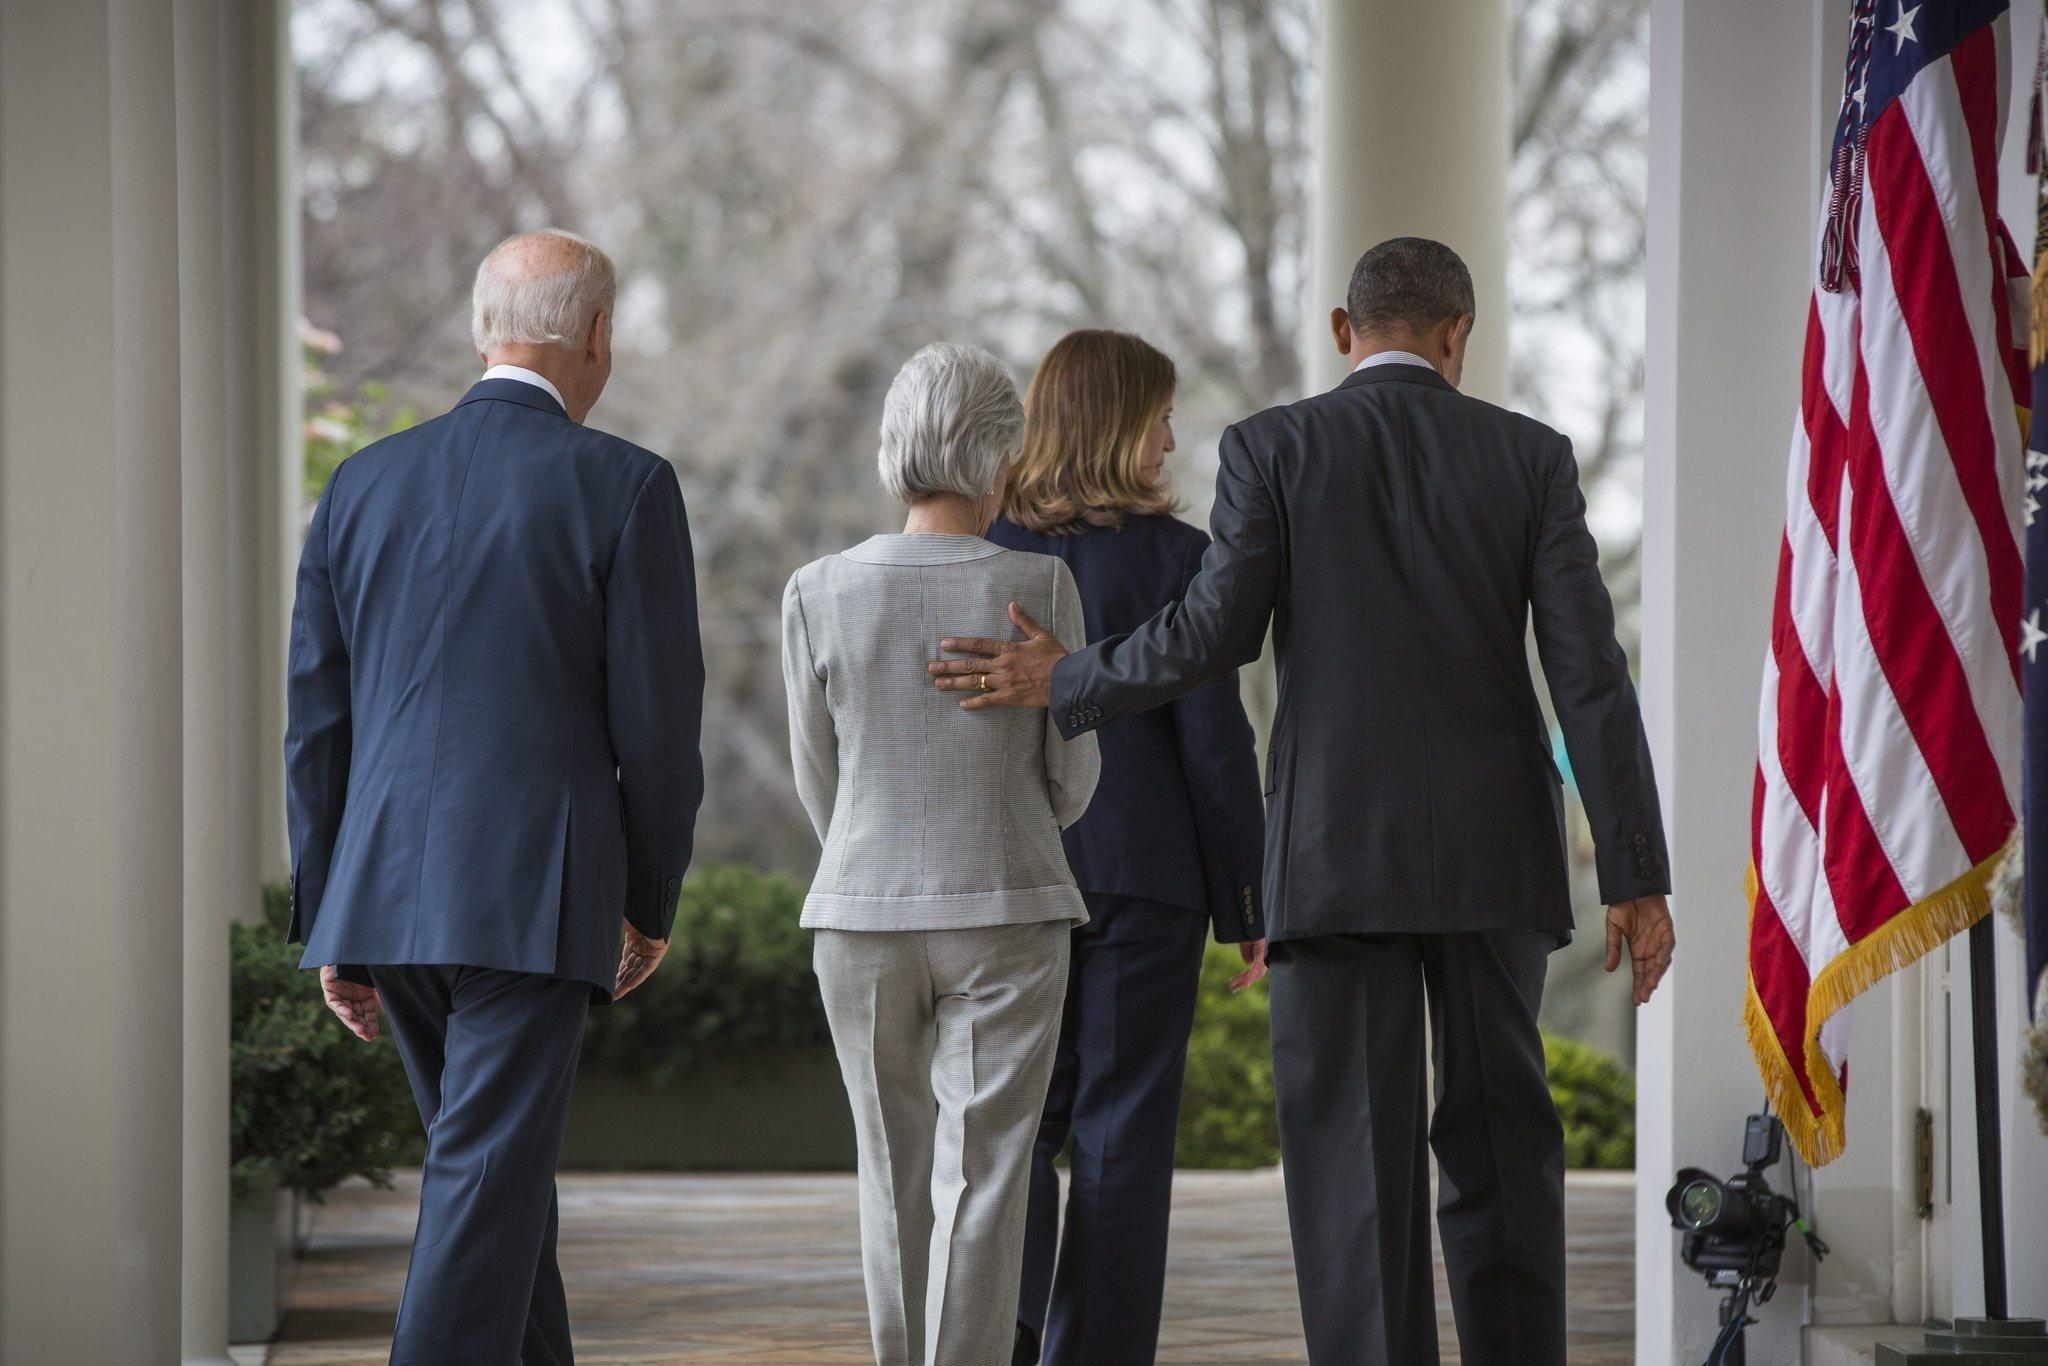 Outgoing Health and Human Services Secretary Kathleen Sebelius (in gray) and nominated successor, Sylvia Mathews Burwell, flanked by Vice President Biden and President Obama after Friday's announcement of the changeover.